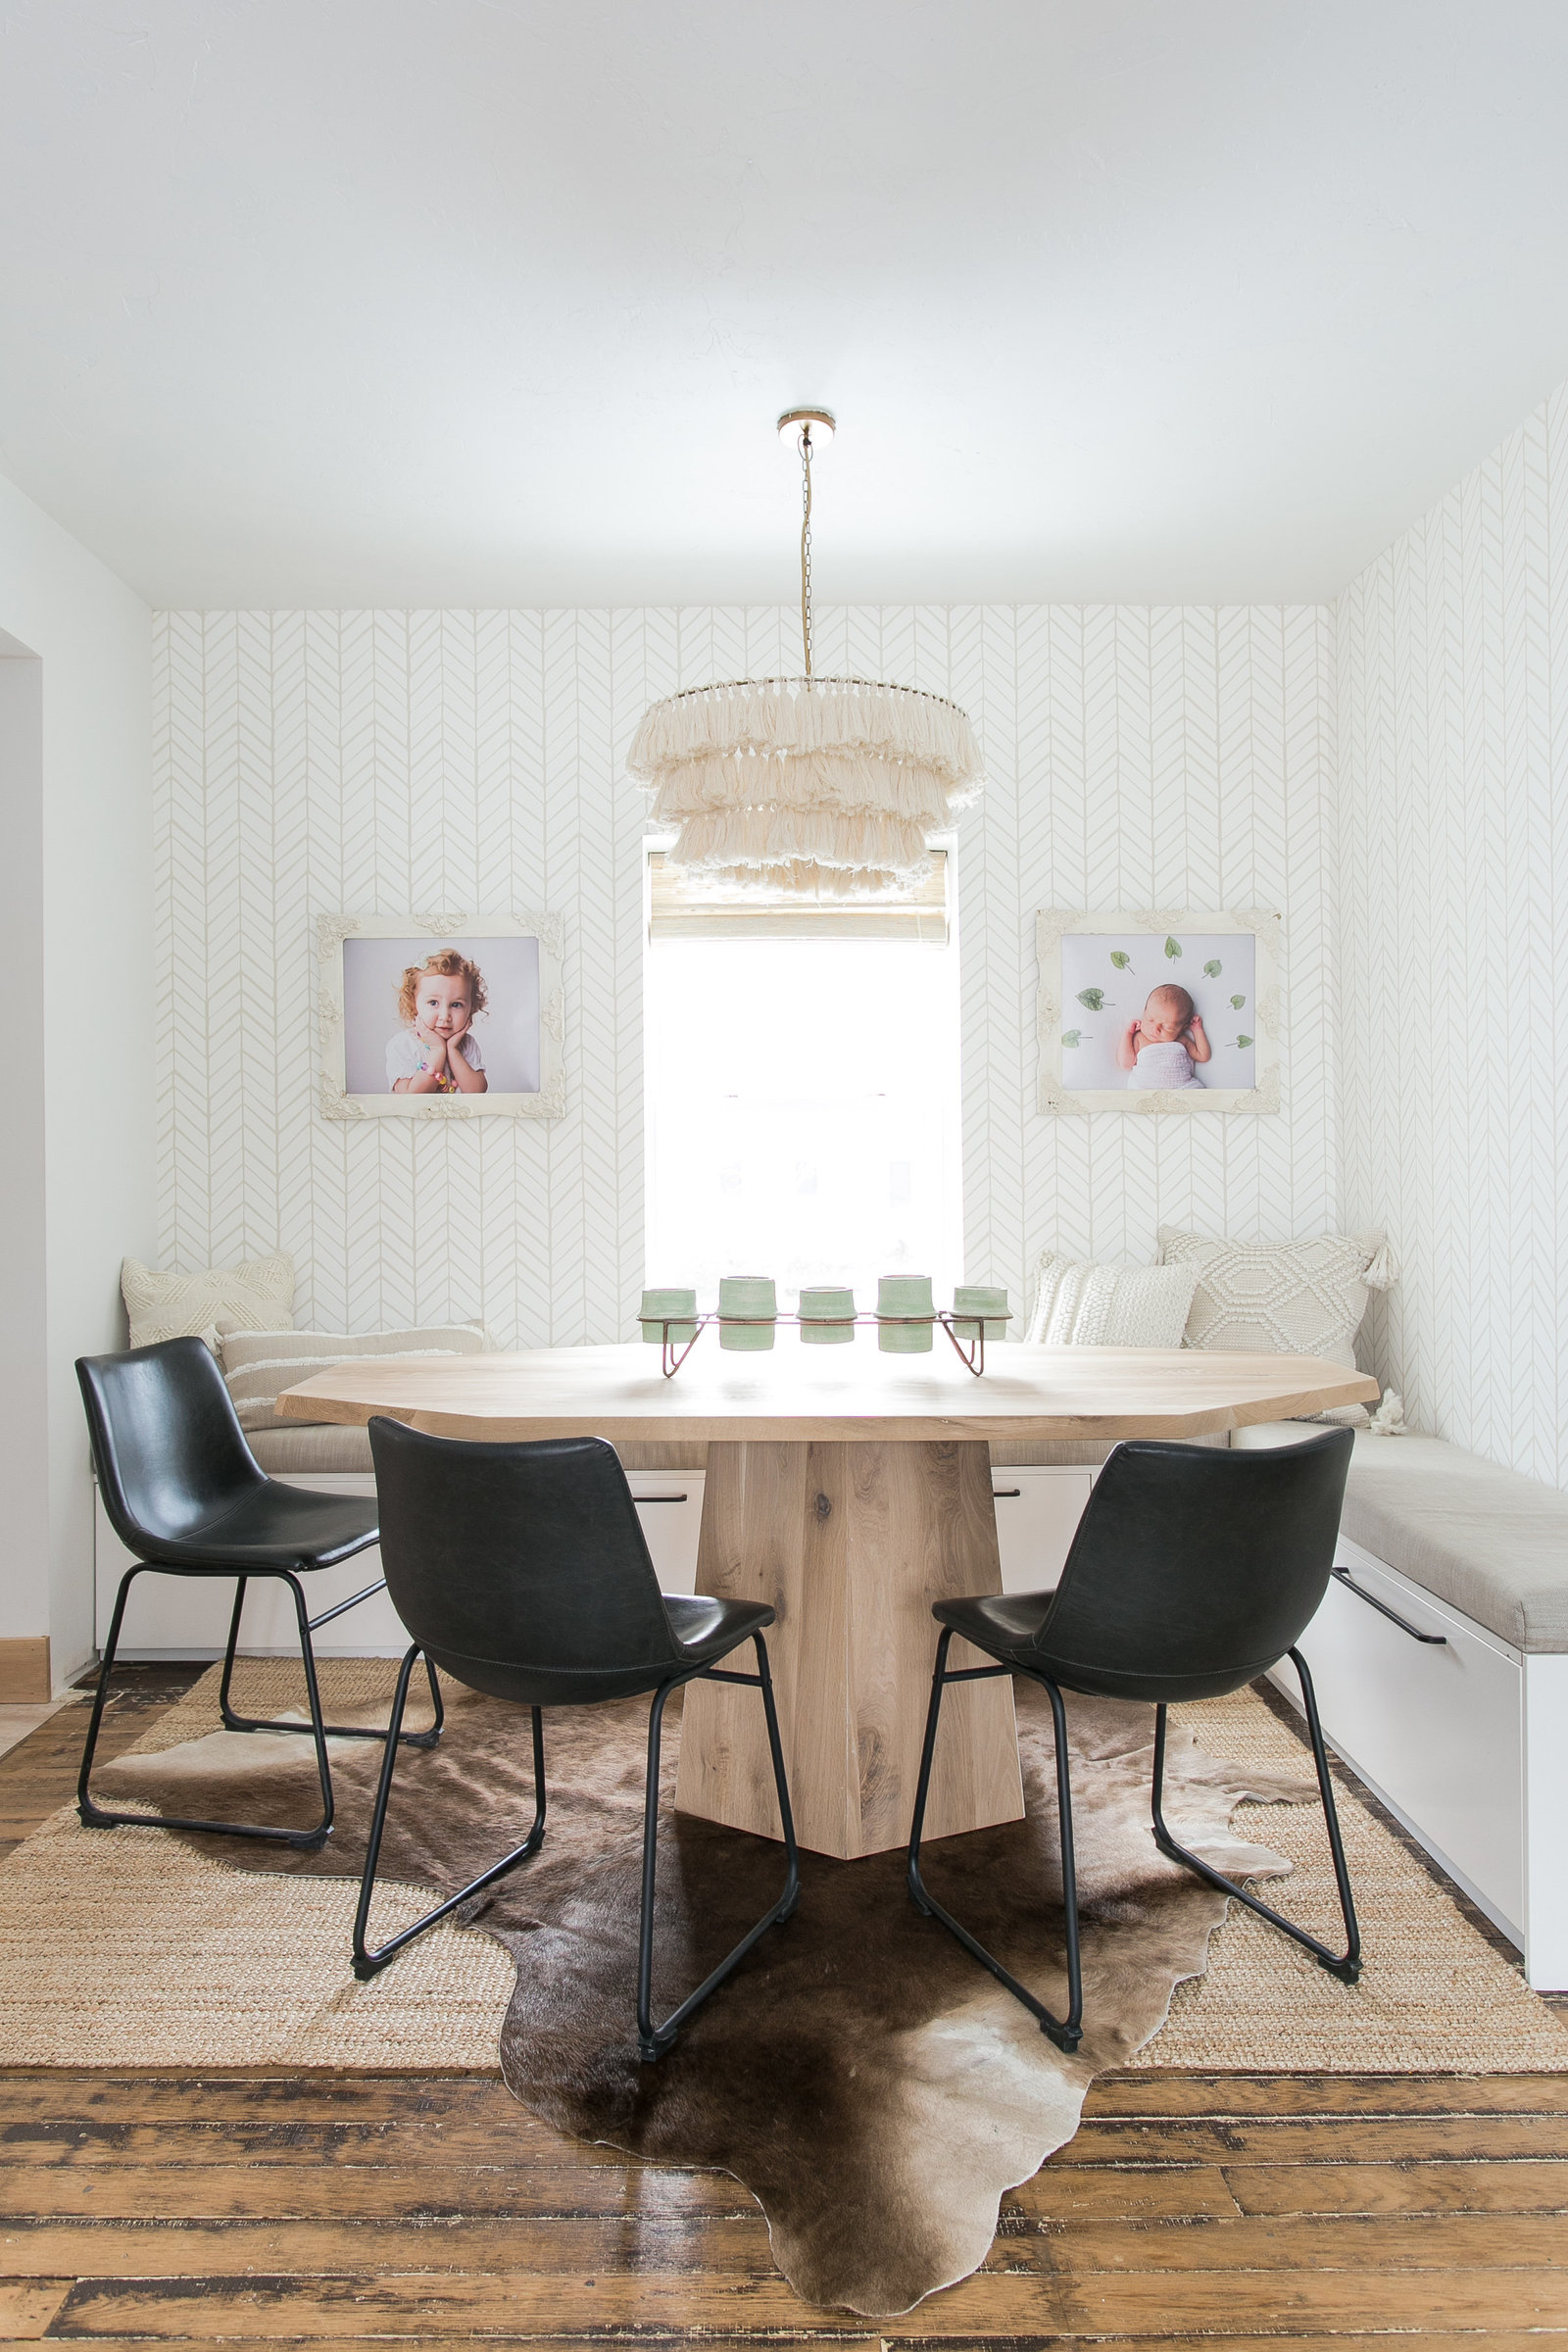 Modern dining room design with built in seating and storage.  Cream and white wallpaper design with tassel chandelier, cowhide rug and custom hexagon table.